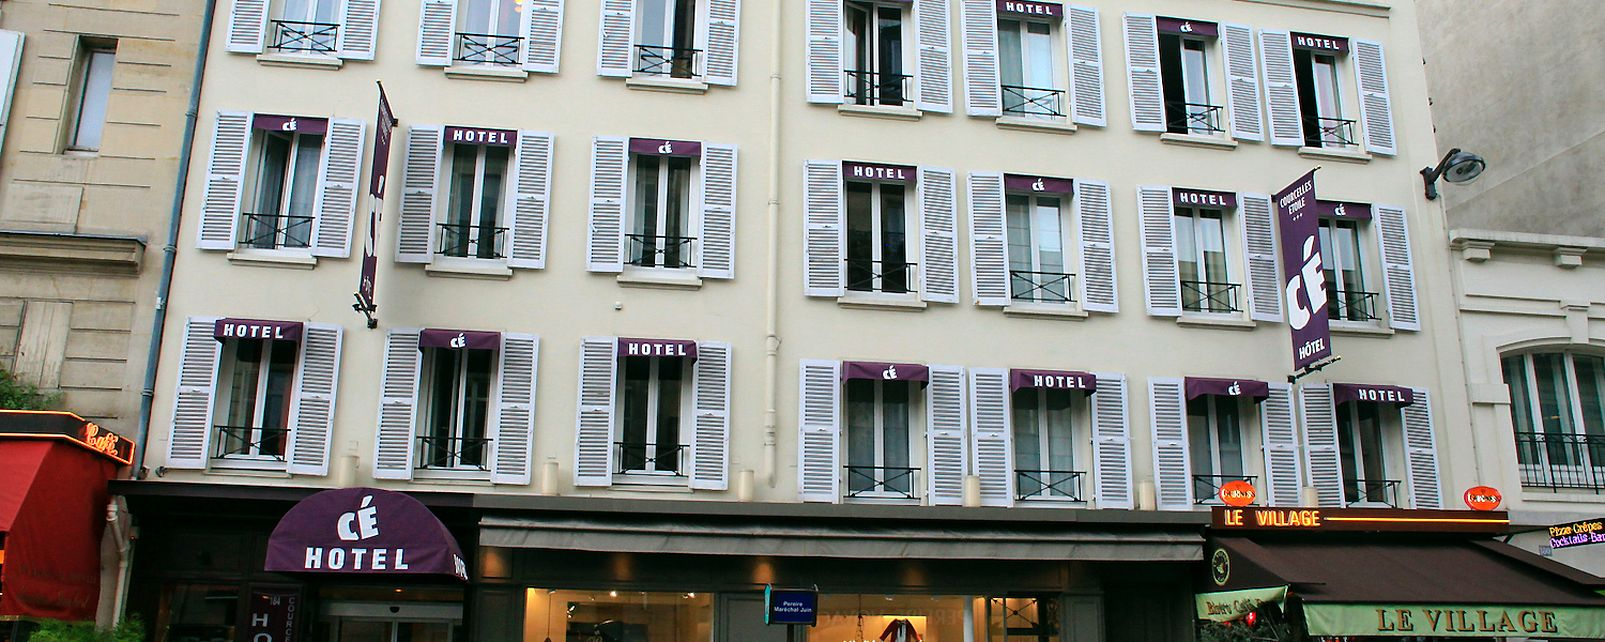 Hotel Courcelles Etoile